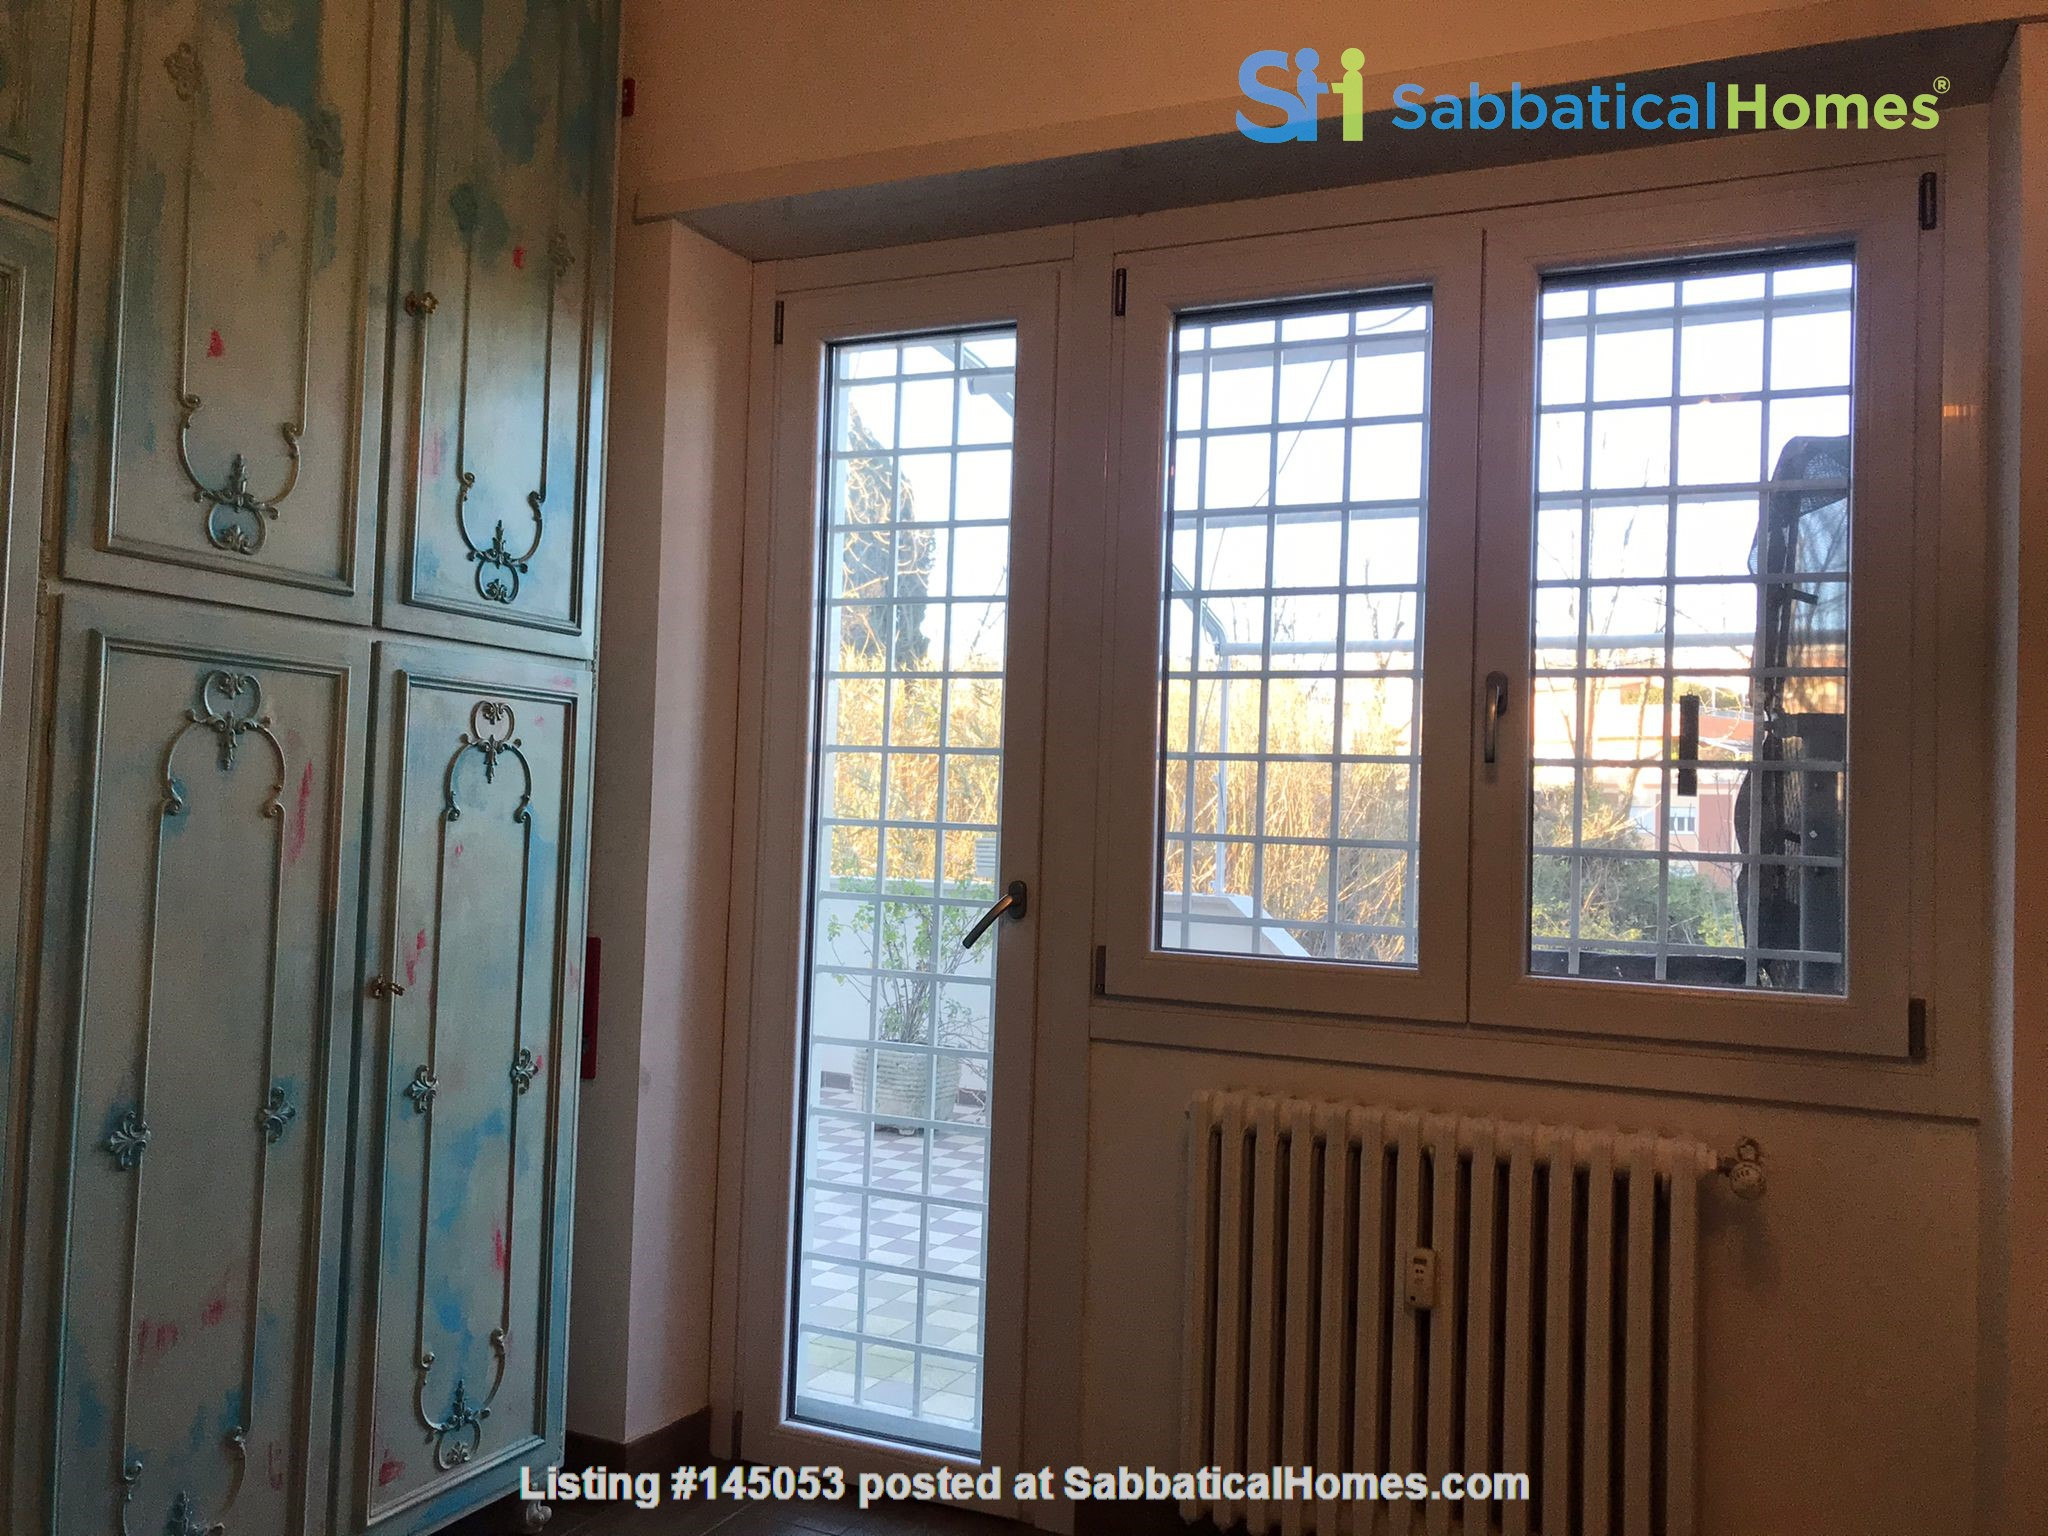 University Sacro Cuore - Brightly apartment with large terrace. Home Rental in Roma, Lazio, Italy 6